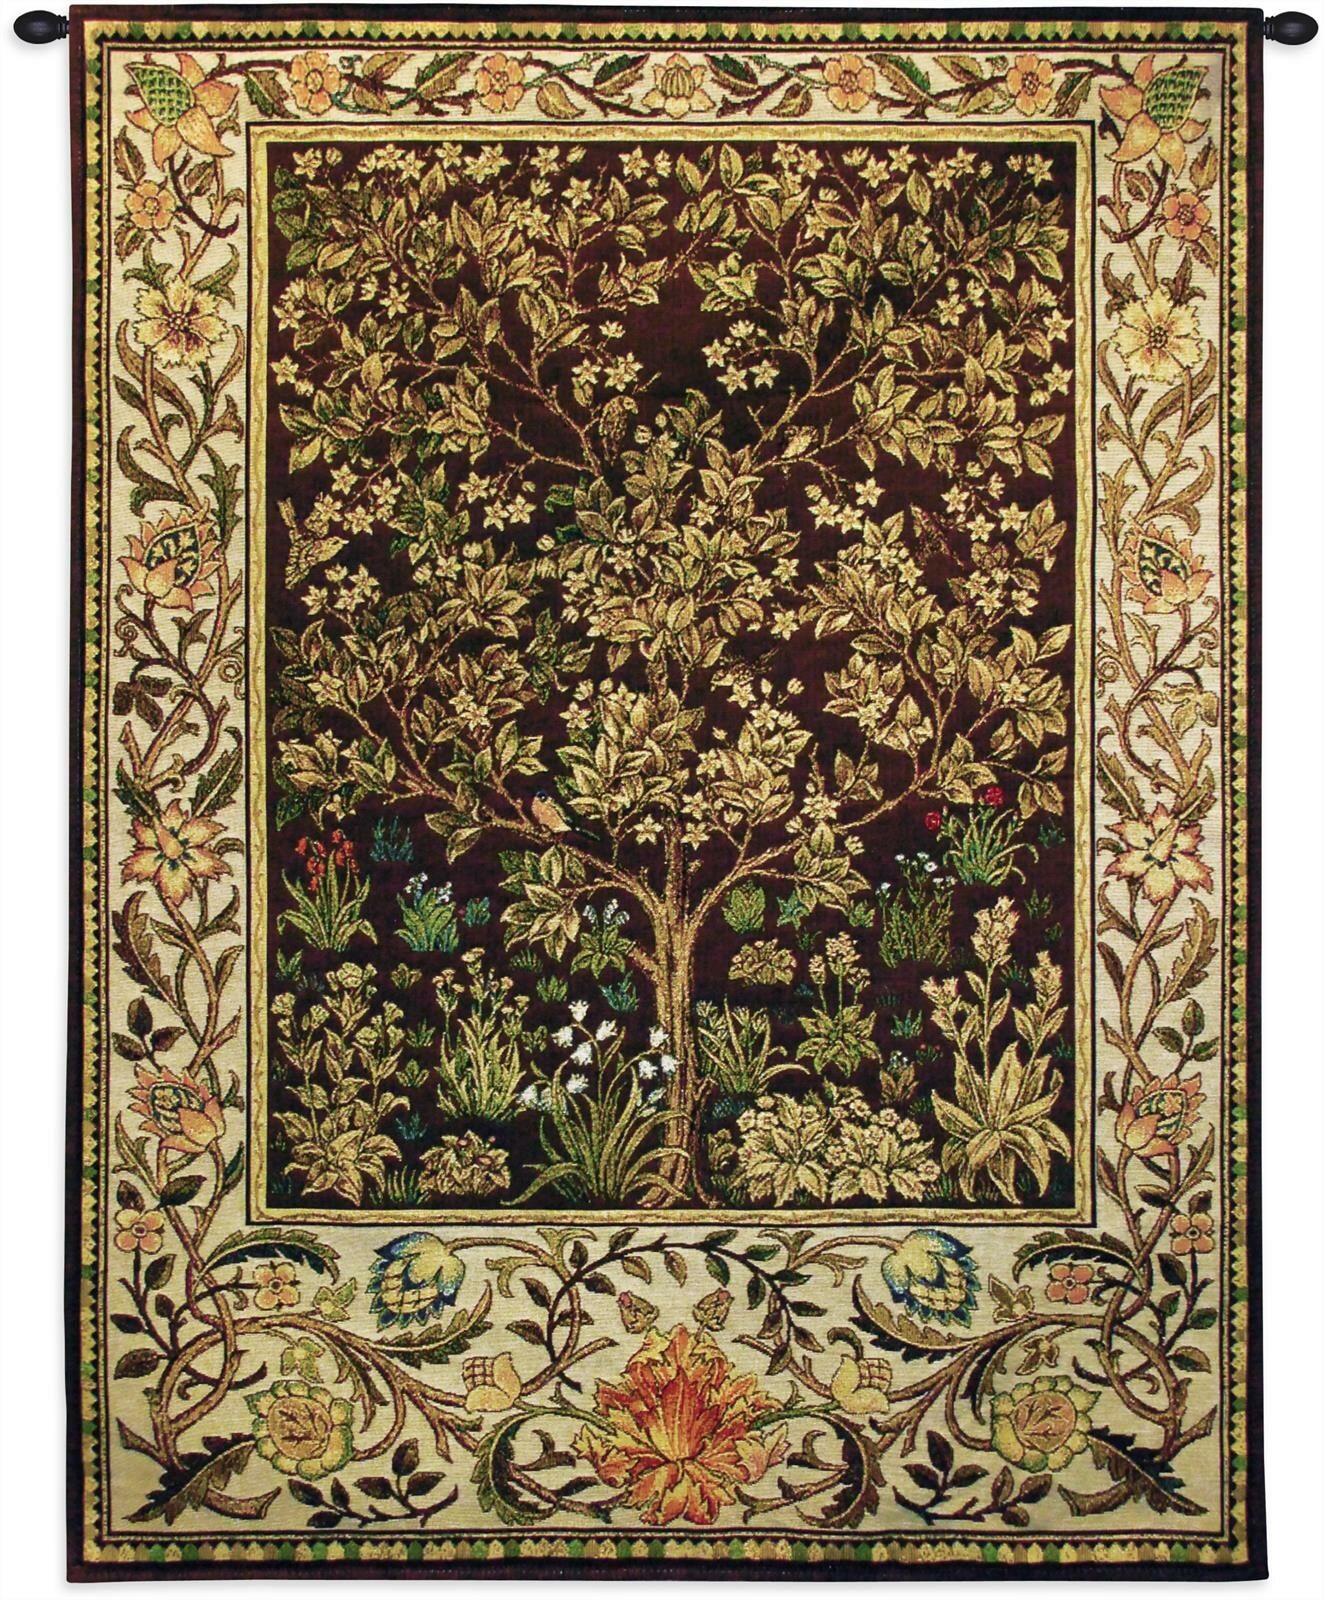 Tree Of Life Umber Bw Tapestry Regarding Most Recently Released Blended Fabric Havenwood Chinoiserie Tapestries Rod Included (View 12 of 20)